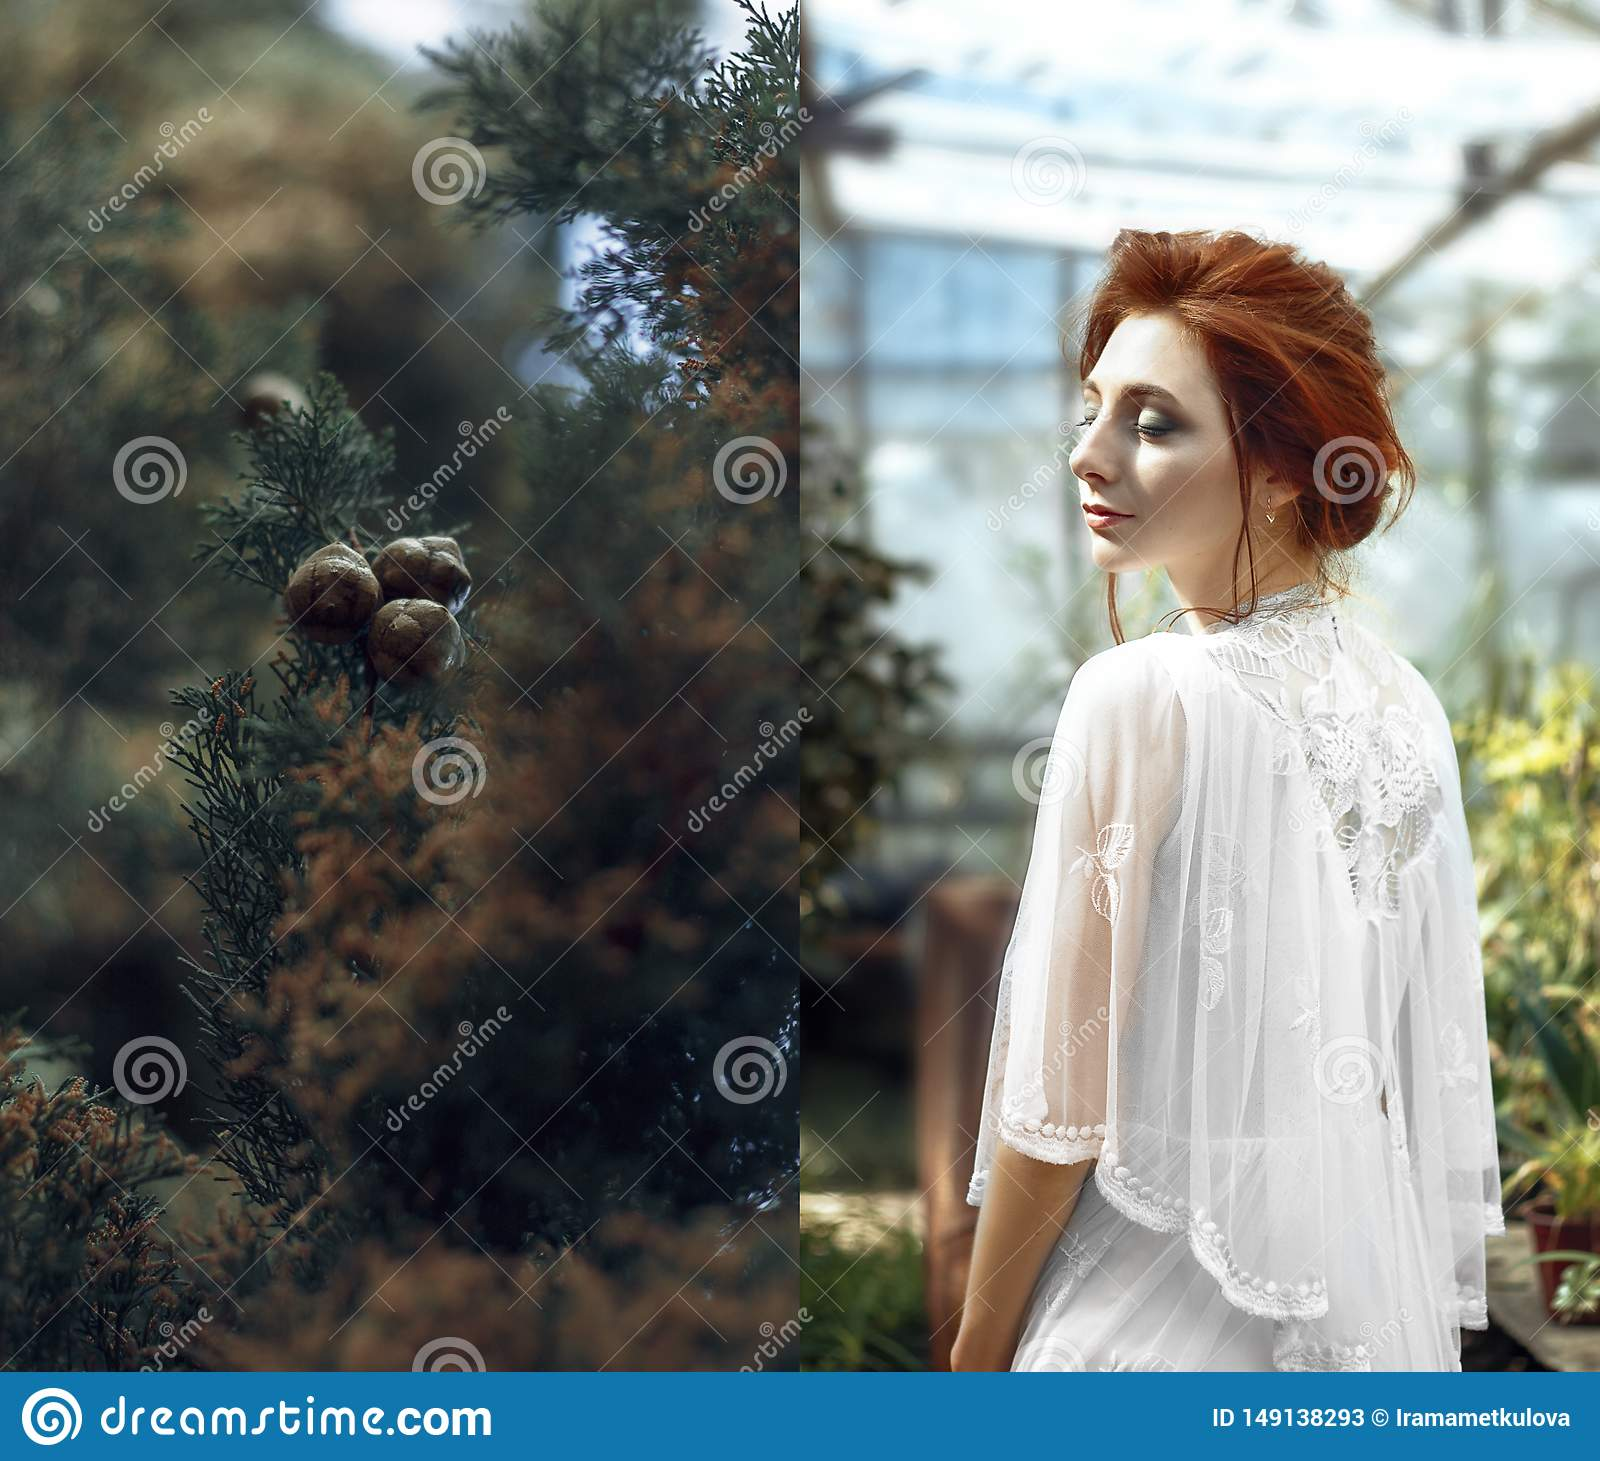 Red hair girl in glasshouse collage